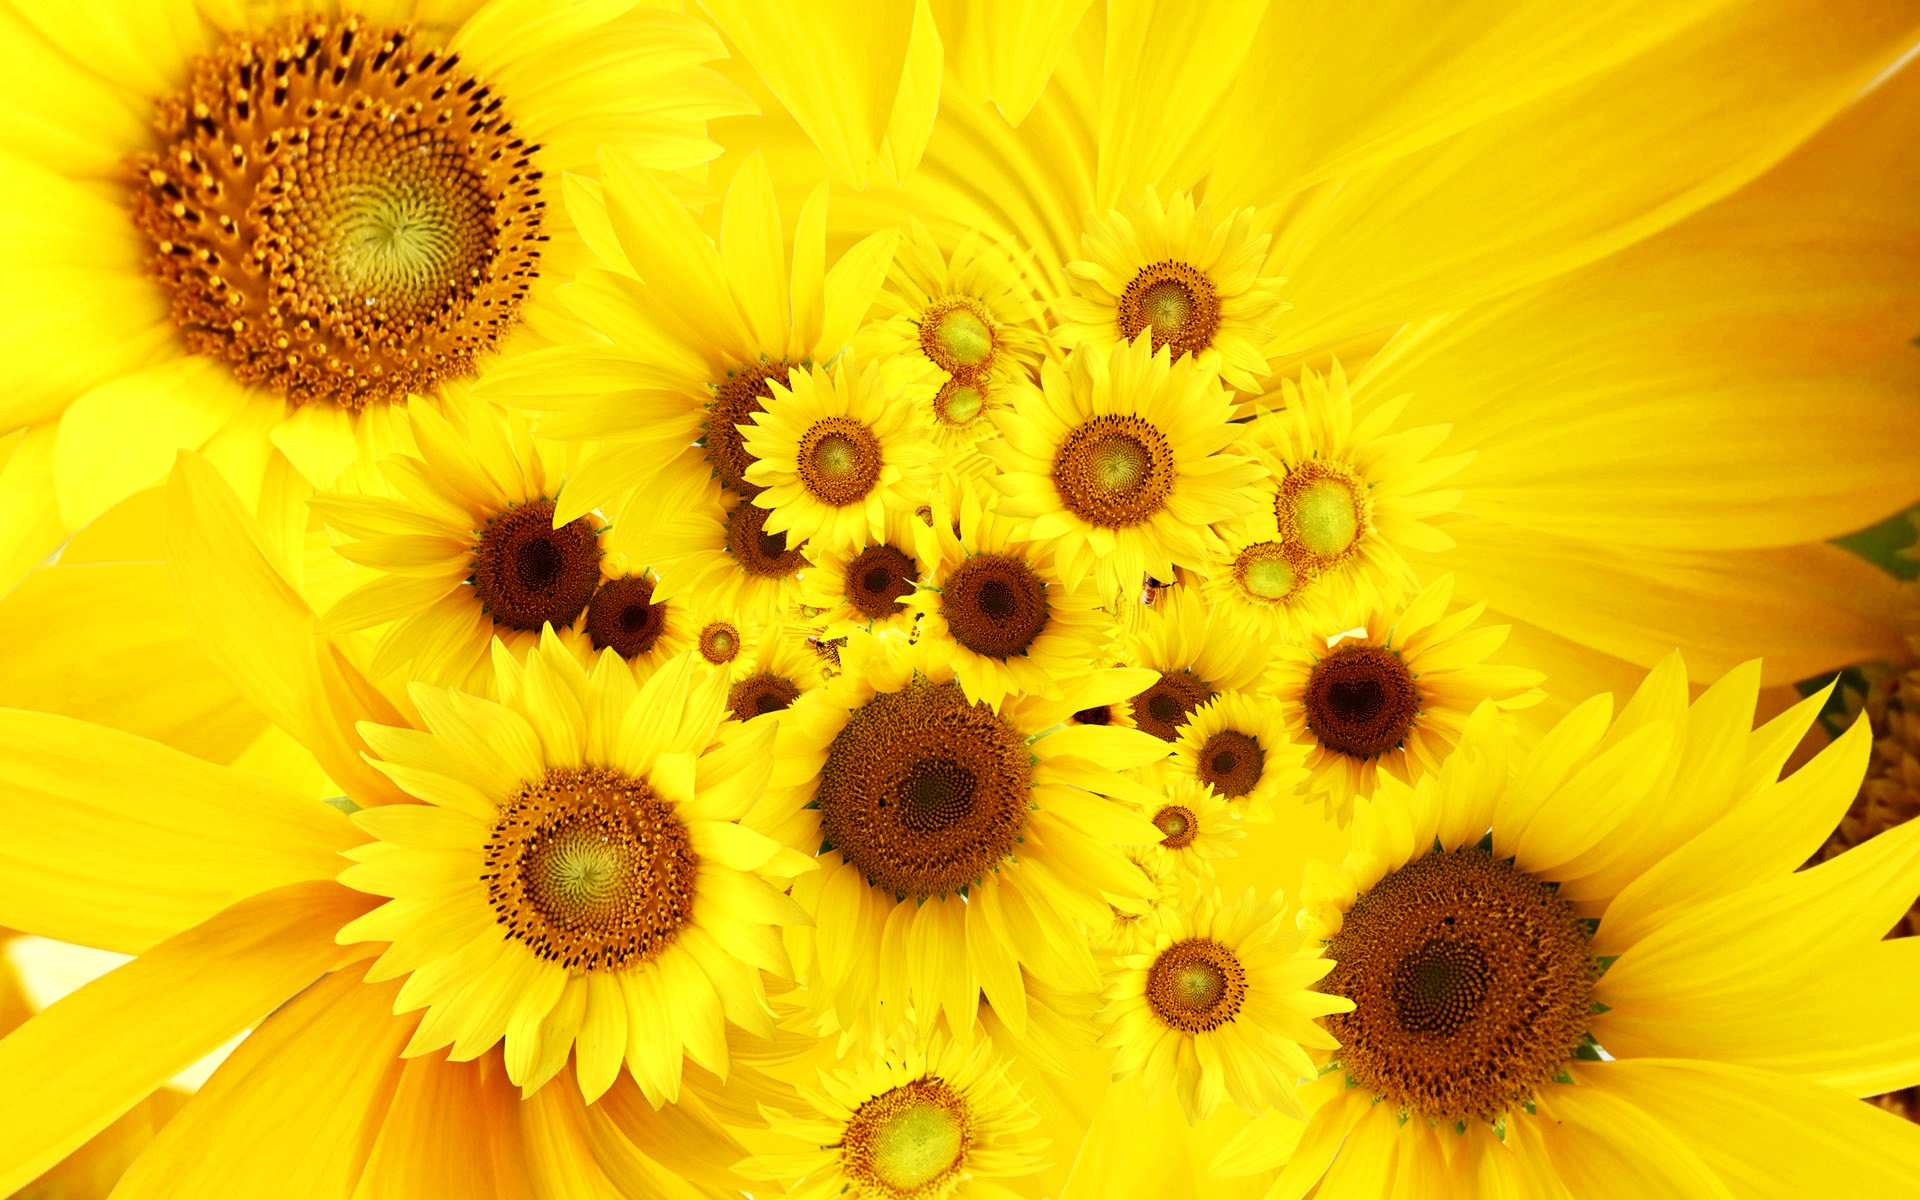 Cool Sunflowers wallpaper